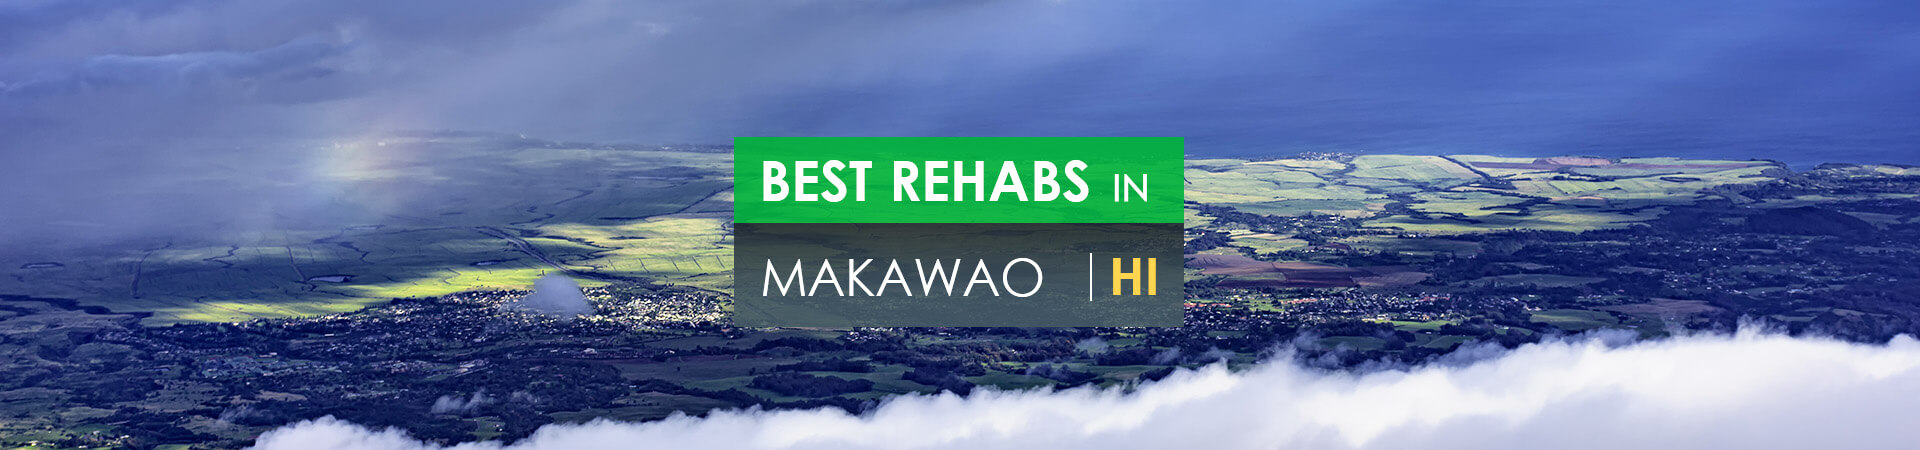 Best rehabs in Makawao, HI